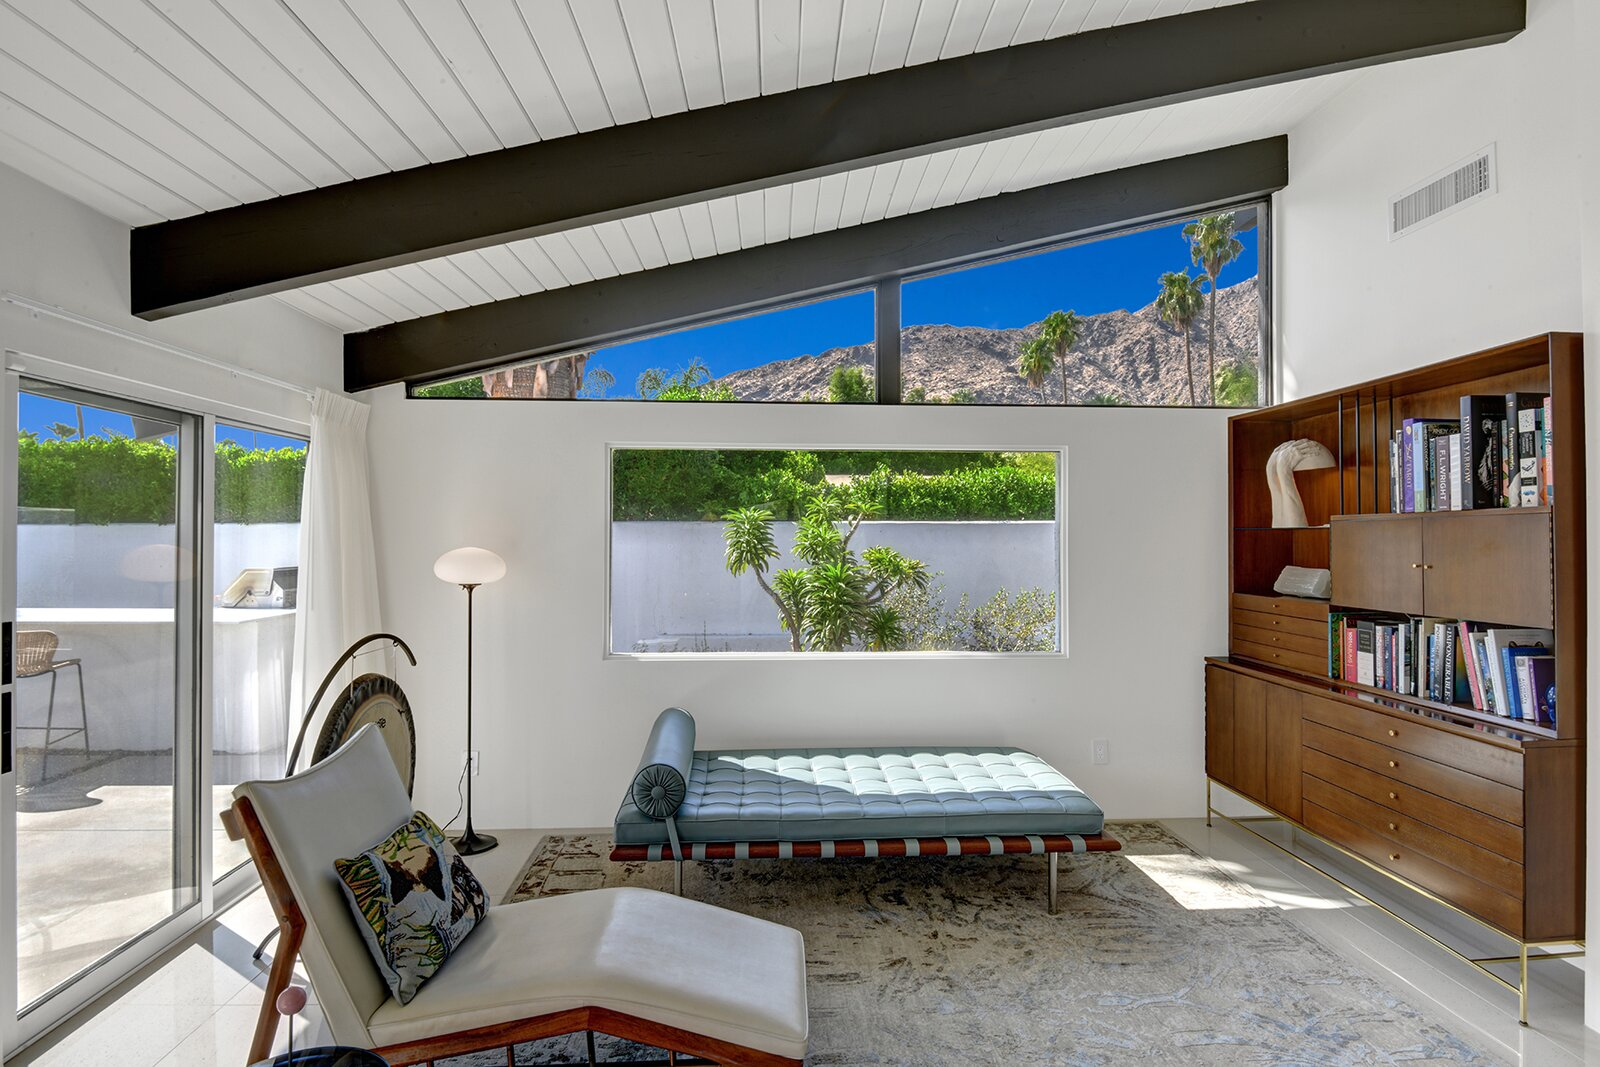 At one end of the living area, windows run along the roofline, framing views of the surrounding mountaintop. The purchase price includes most of the home's furnishings except for the current owner's collection of artwork and other personal belongings.  Photo 3 of 17 in A Palm Springs Alexander Home Sings After a Chic Renovation and Hits the Market to the Tune of $2.1M